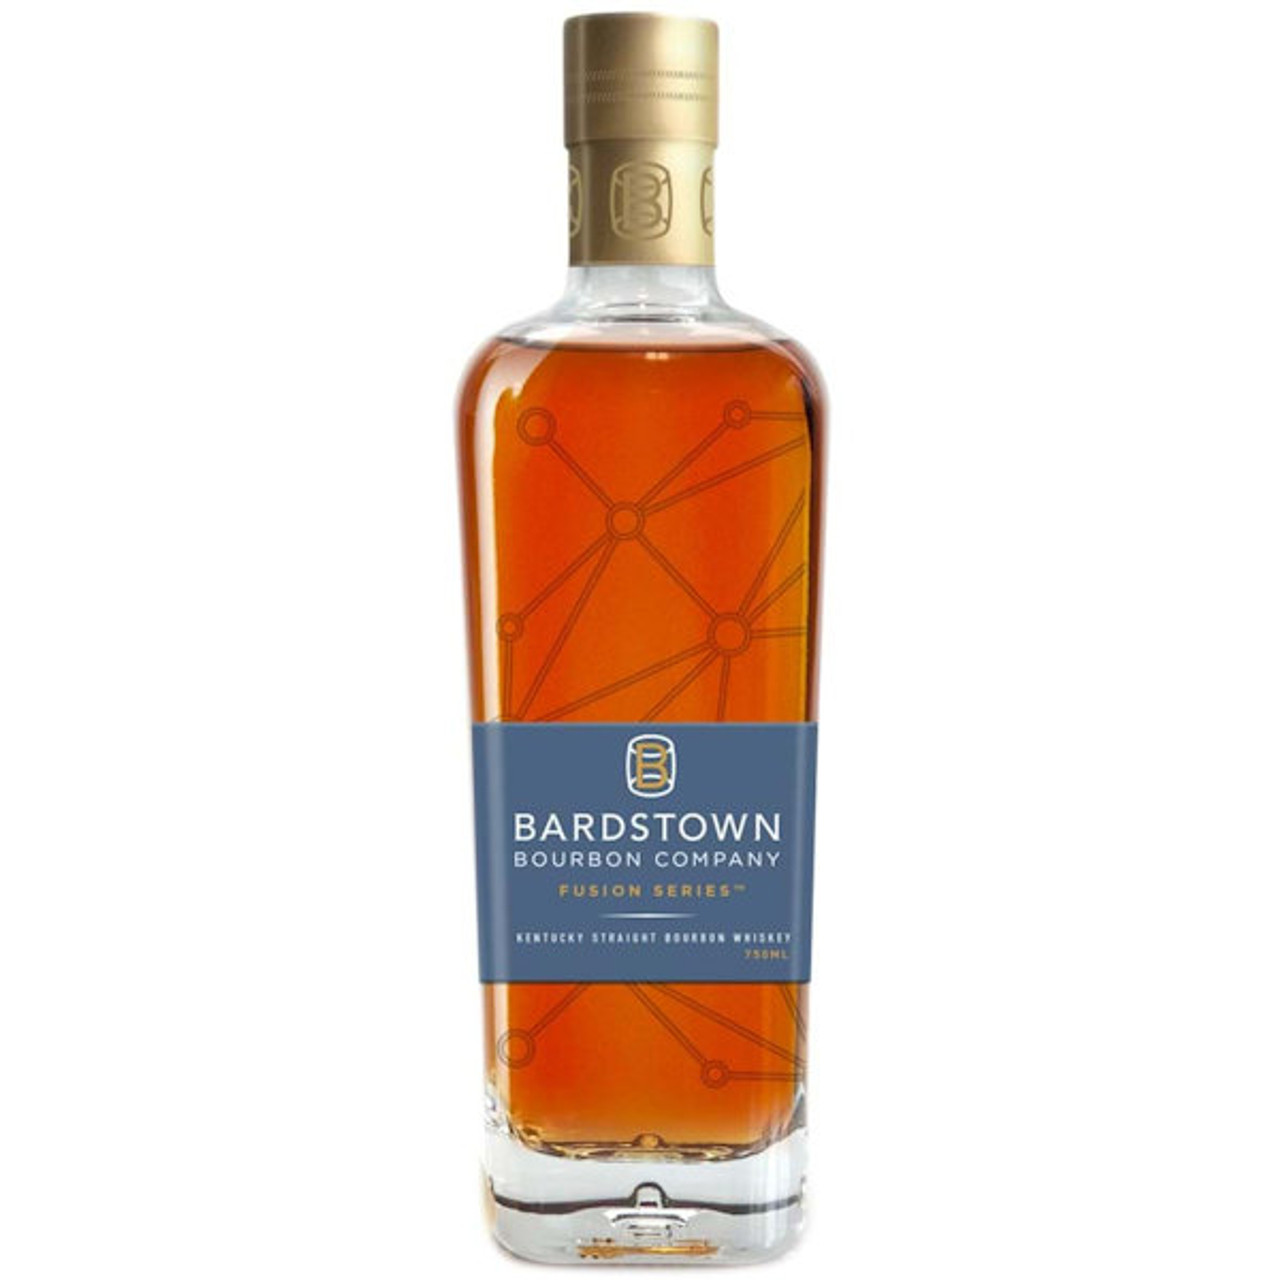 Bardstown Fusion Kentucky Straight Bourbon Whiskey 750ml